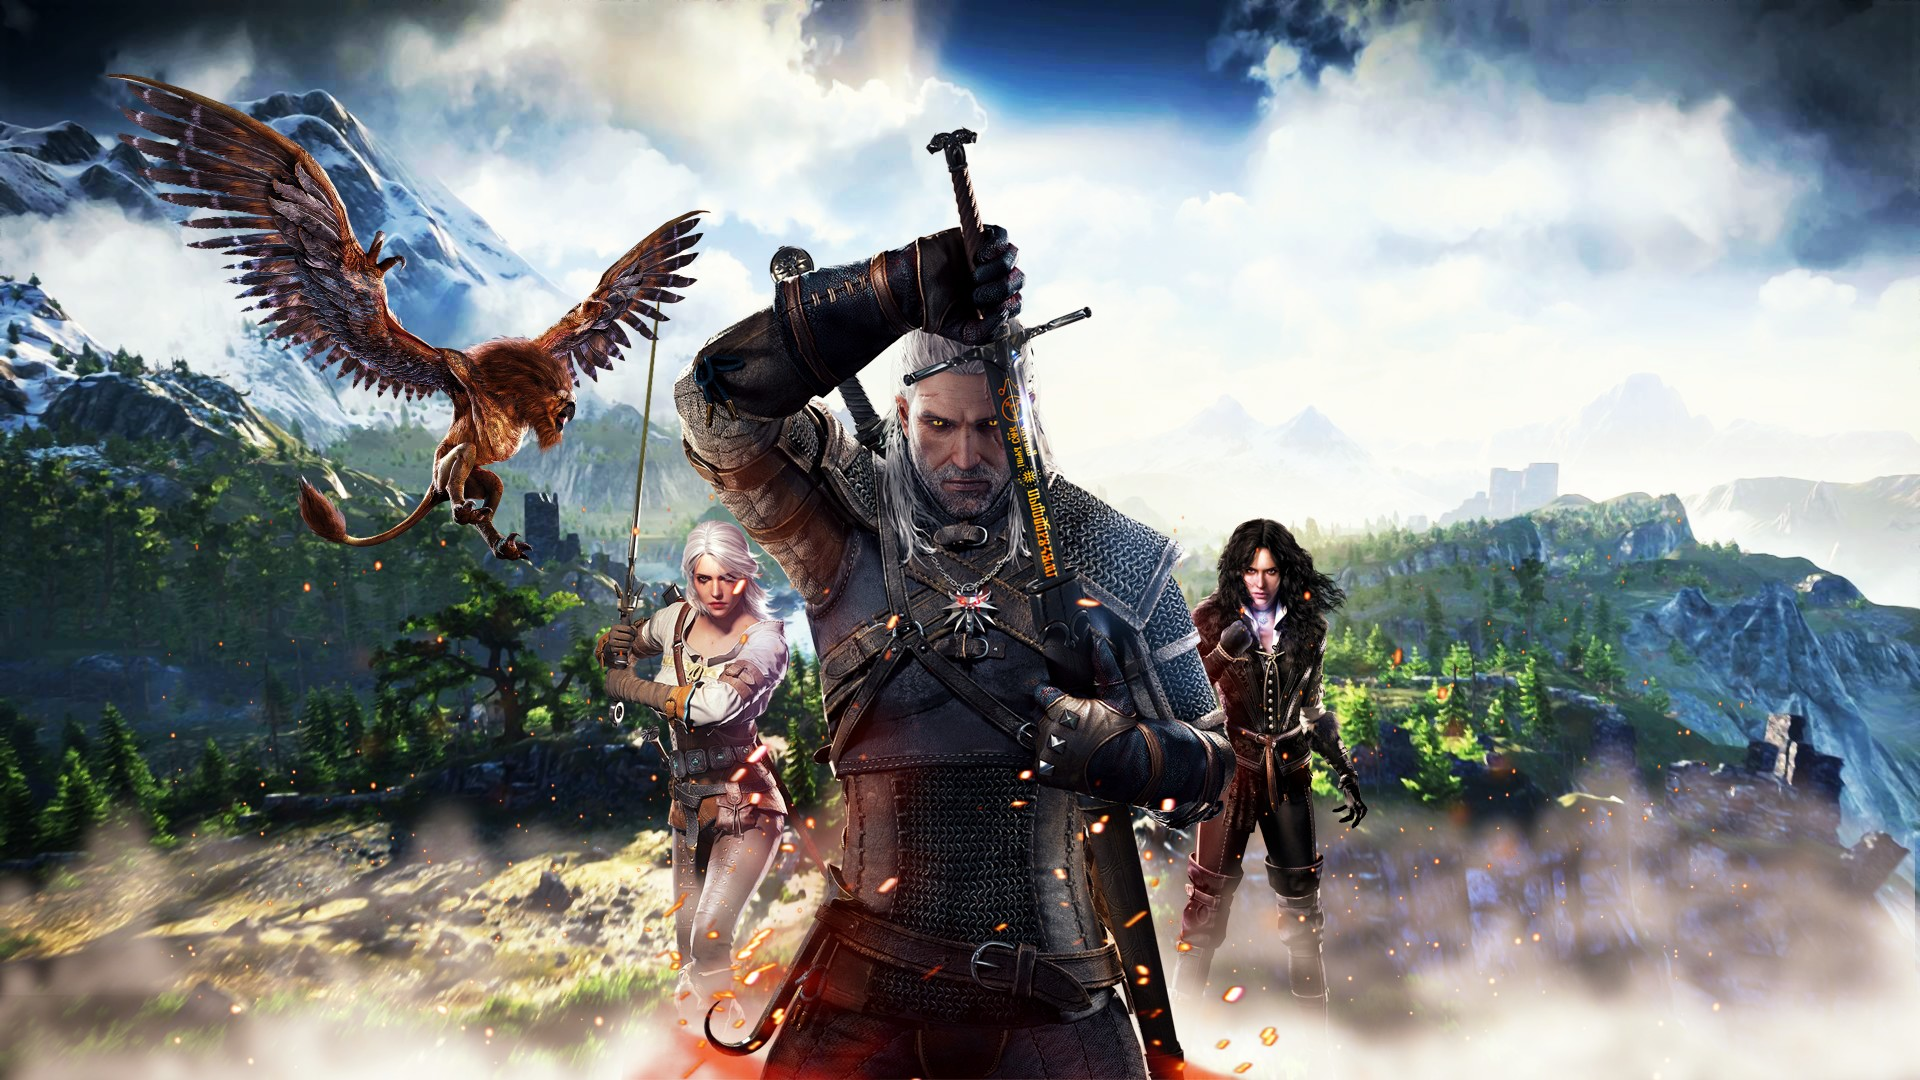 Witcher 3 Wallpaper Download Free Amazing Hd Wallpapers For